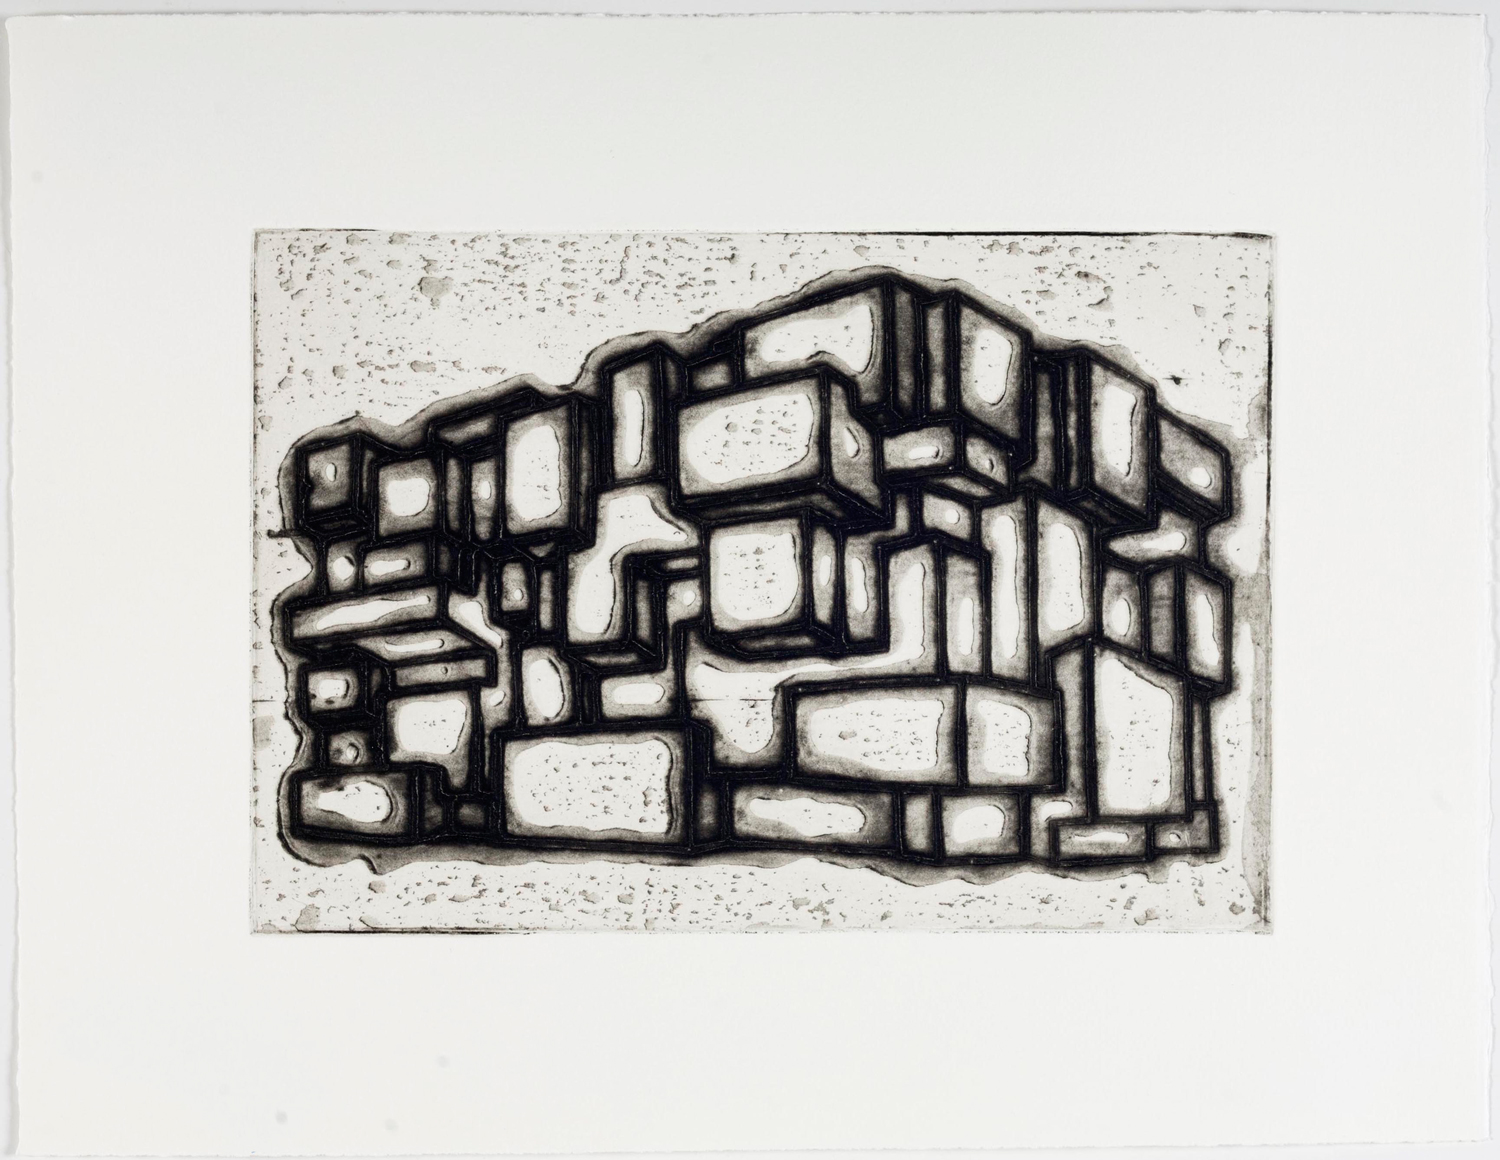 """Ideal Structures for a Dubious Future (Block Building)  2012; Explosive intaglio on paper; 13"""" x 17""""; Self published; Edition of 12"""